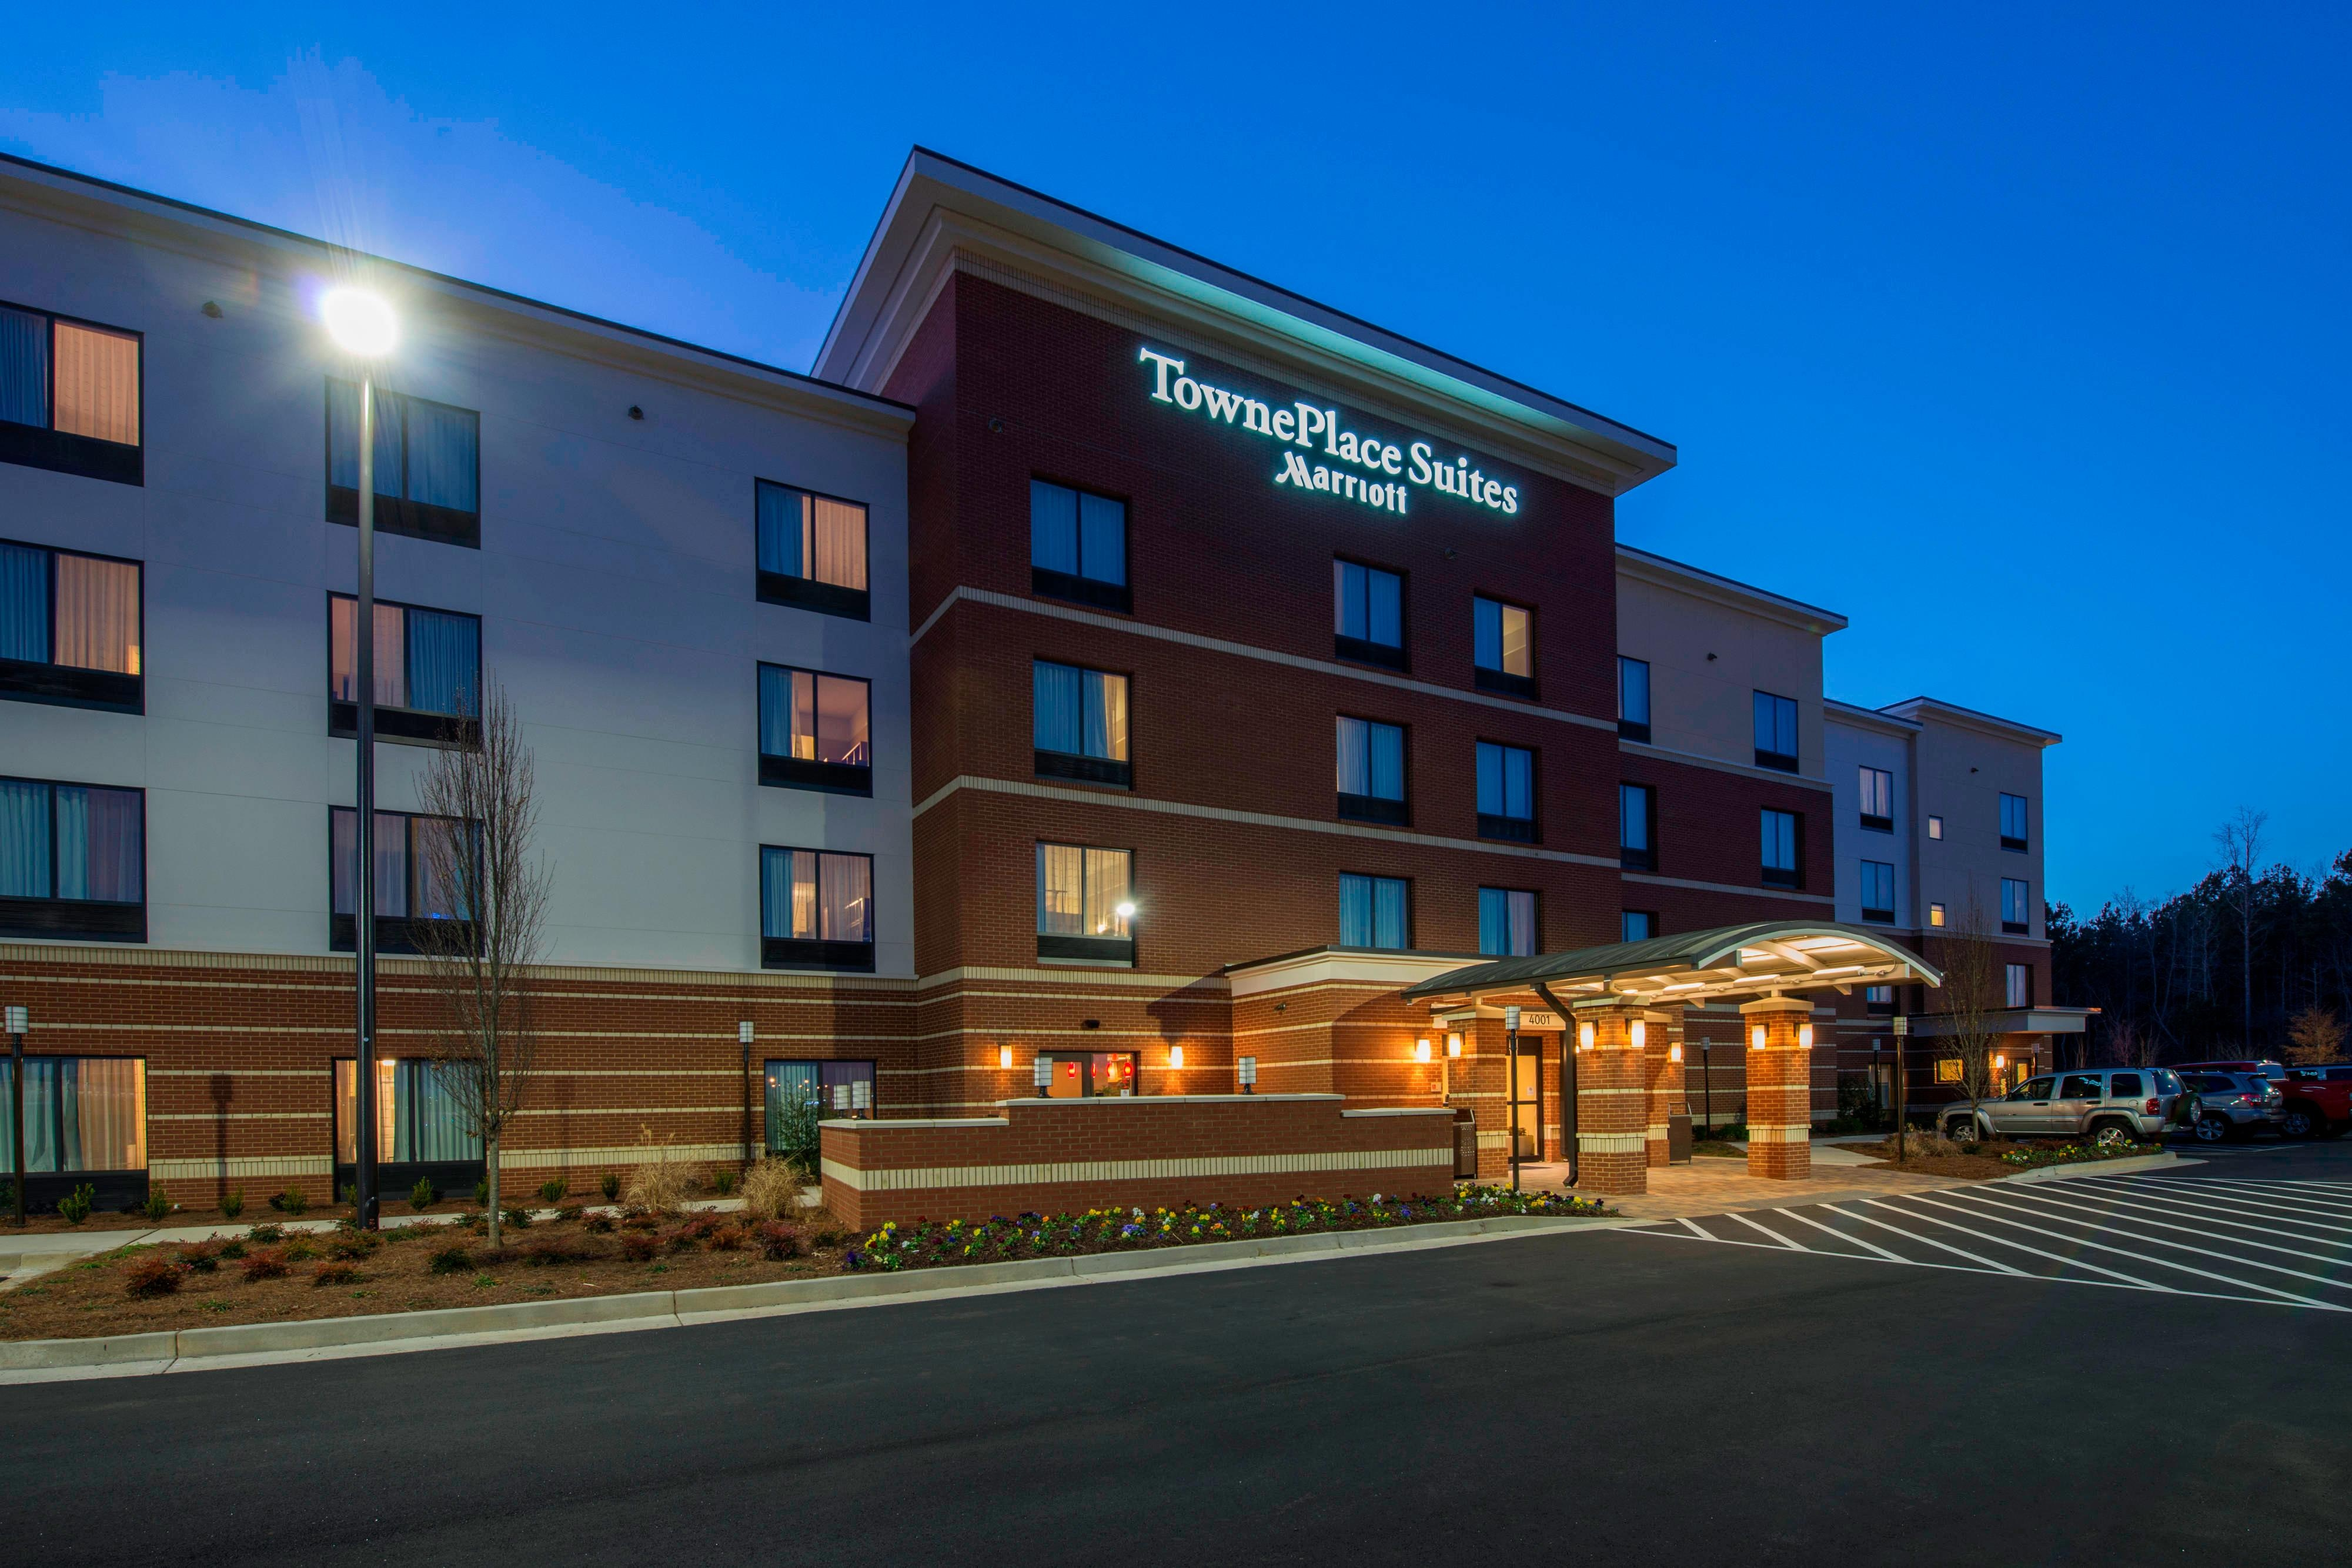 TownePlace Suites Newnan